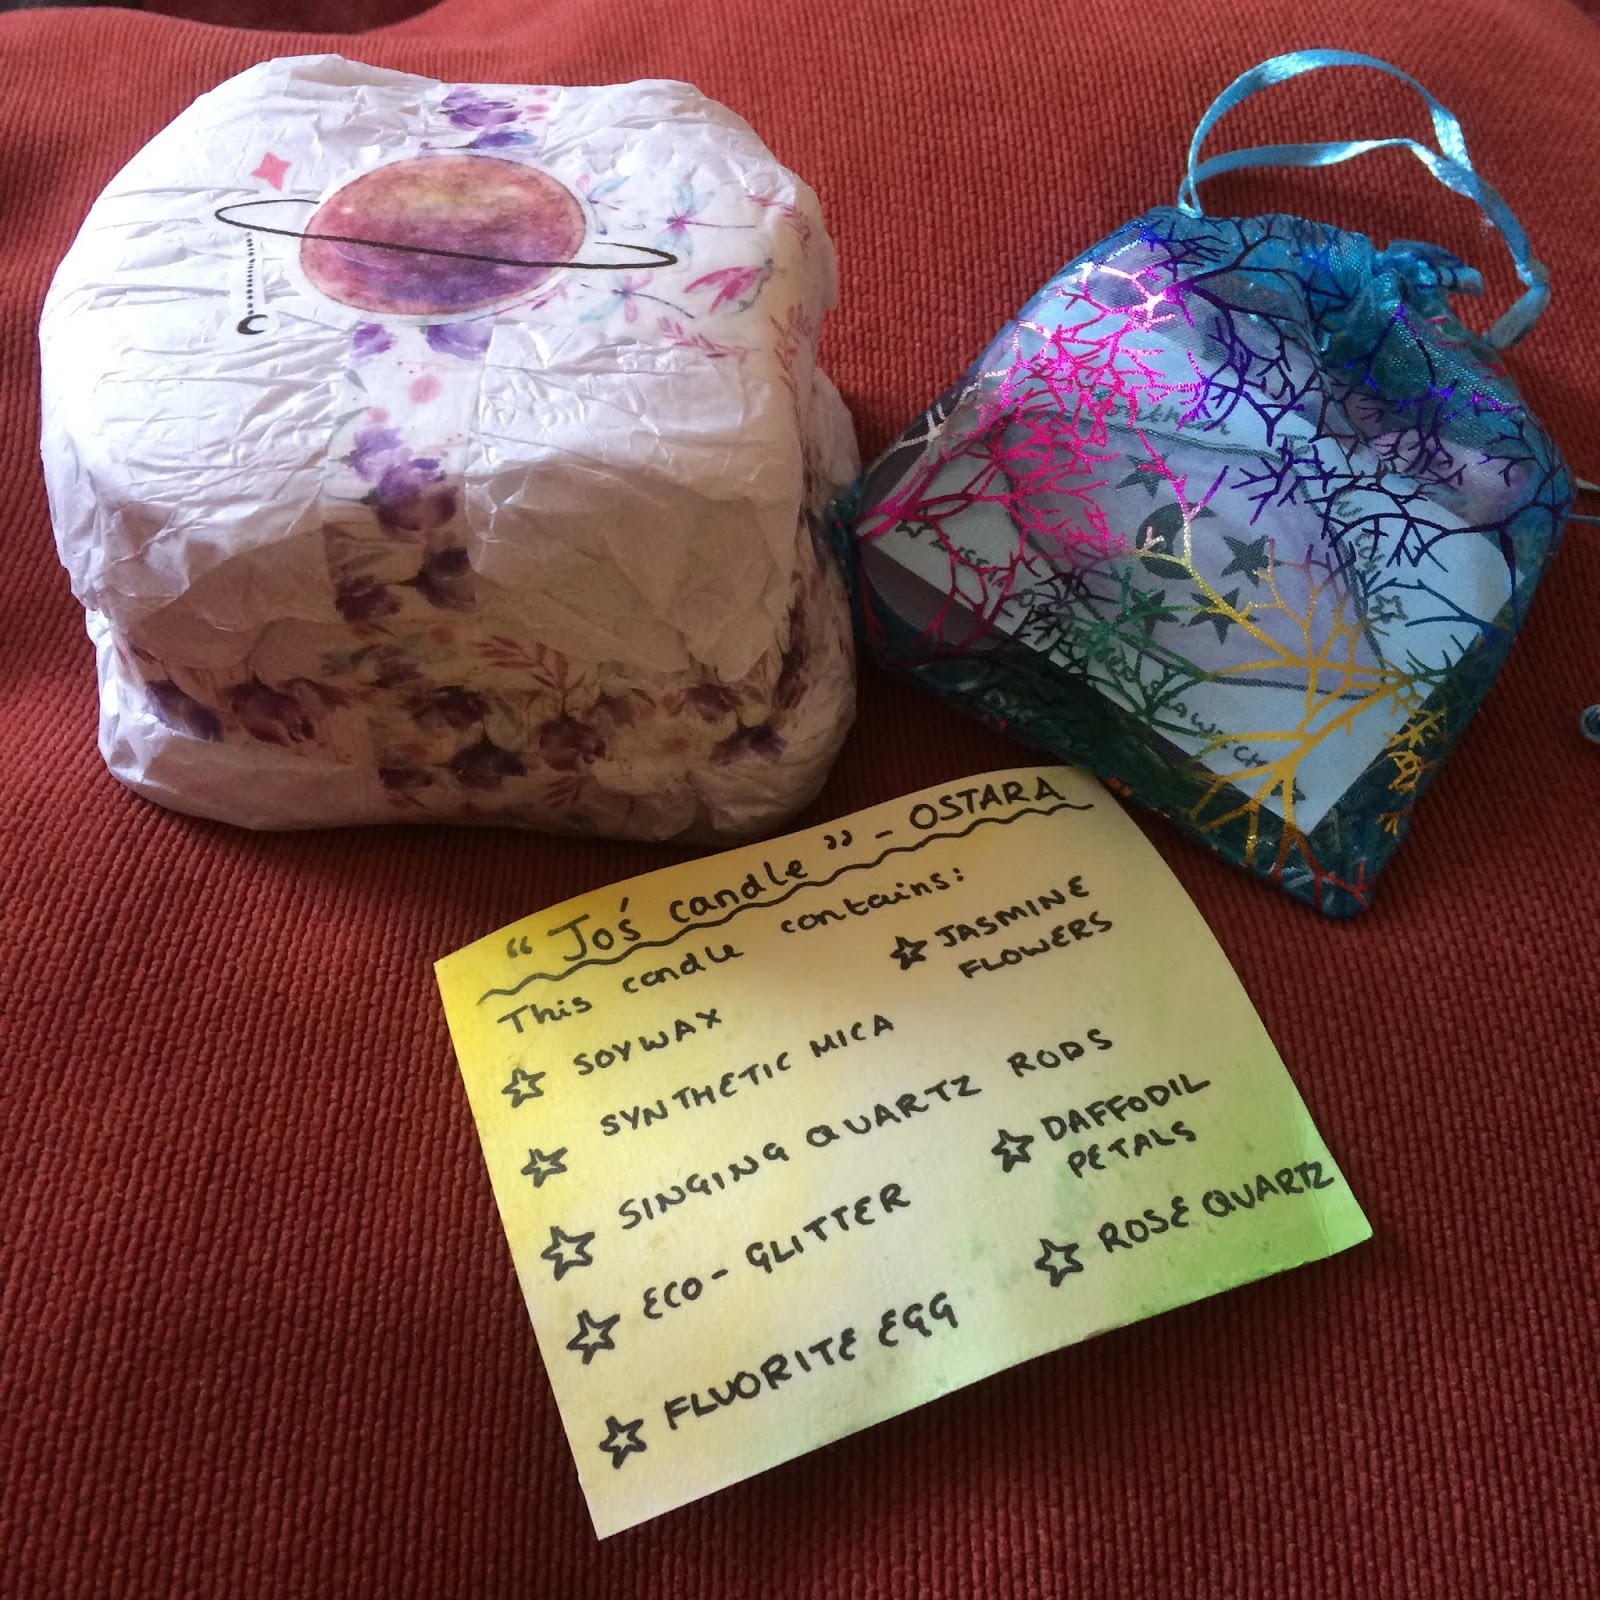 A photo of how my Ostara candle was wrapped, with tissue paper around it taped with washi tape, a pouch of tea lights and wrapped candles next to it, showing the Southern Sea Witch logo card inside, and in front of them both, a yellow and green watercoloured piece of card, handwritten with a list of what is contained in the candle